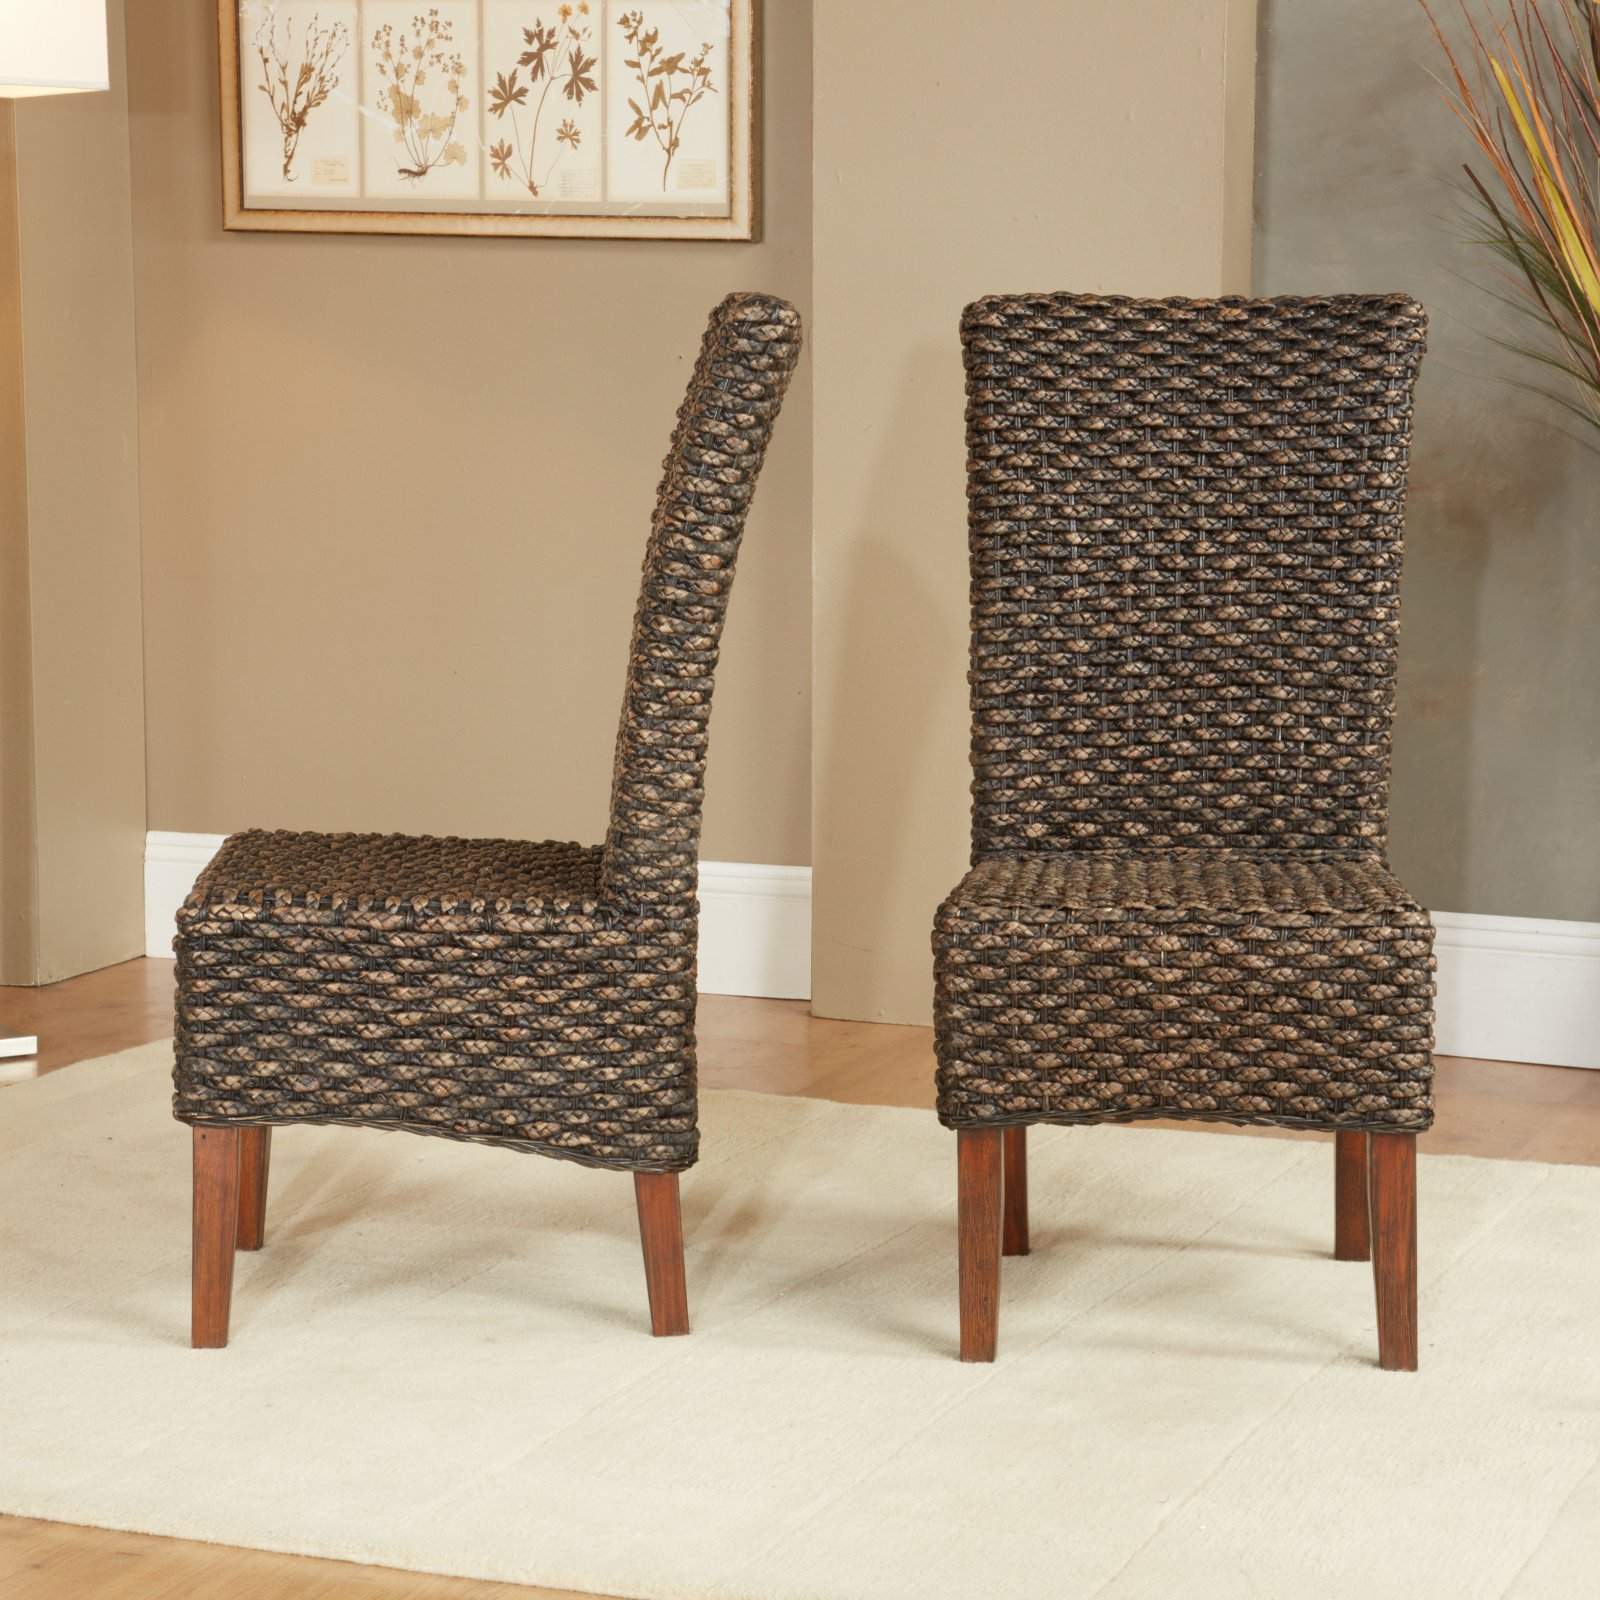 Modus Meadow Wicker Dining Side Chair Brick Brown Set of 2 by Modus Furniture International